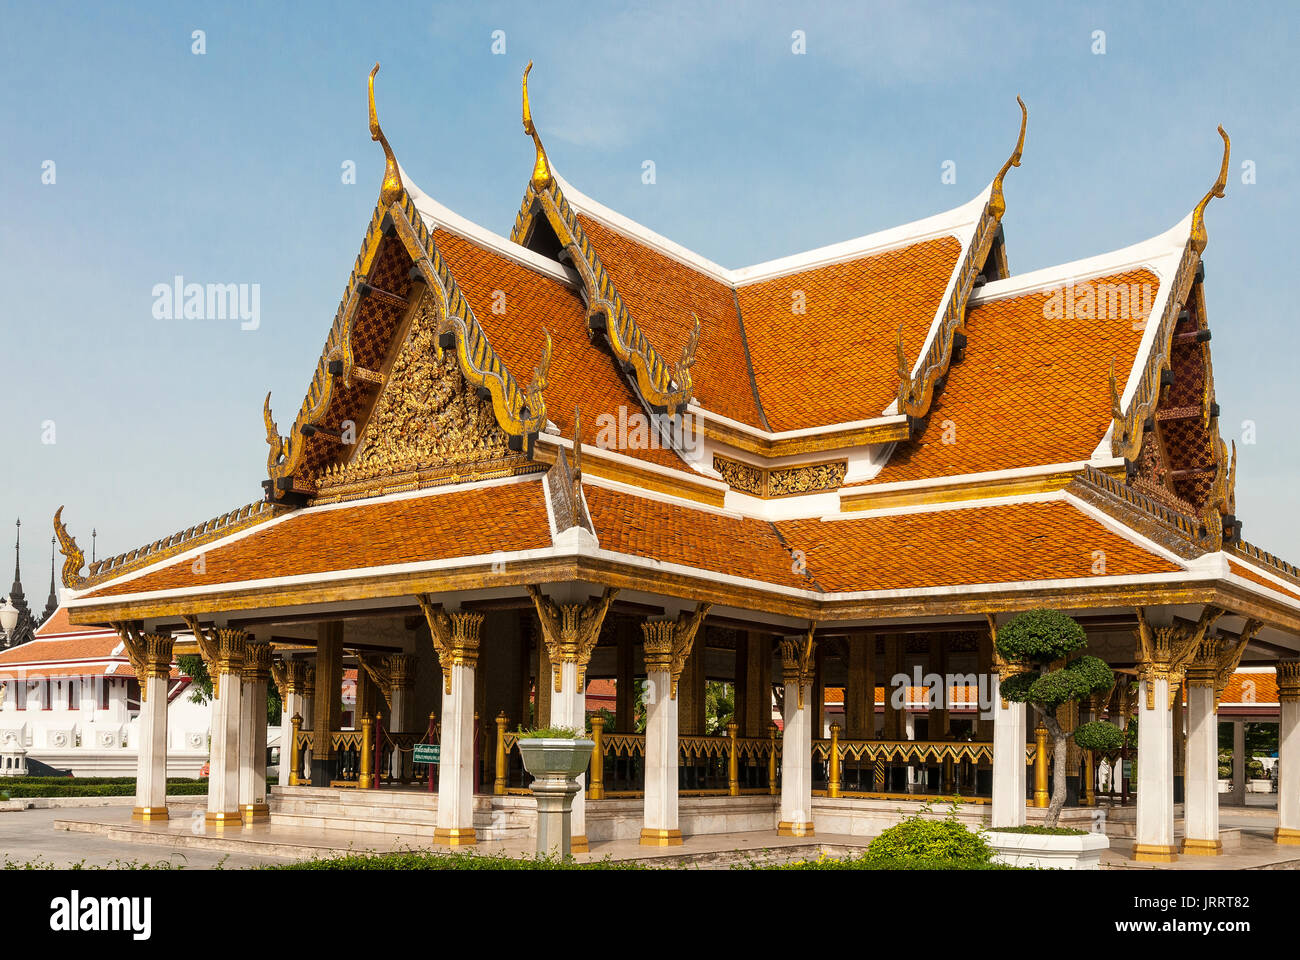 Traditional carved and guilded roof to a Royal reception, pavillion at the Rattanakosin Exhibition Hall, Bangkok, Thailand - Stock Image